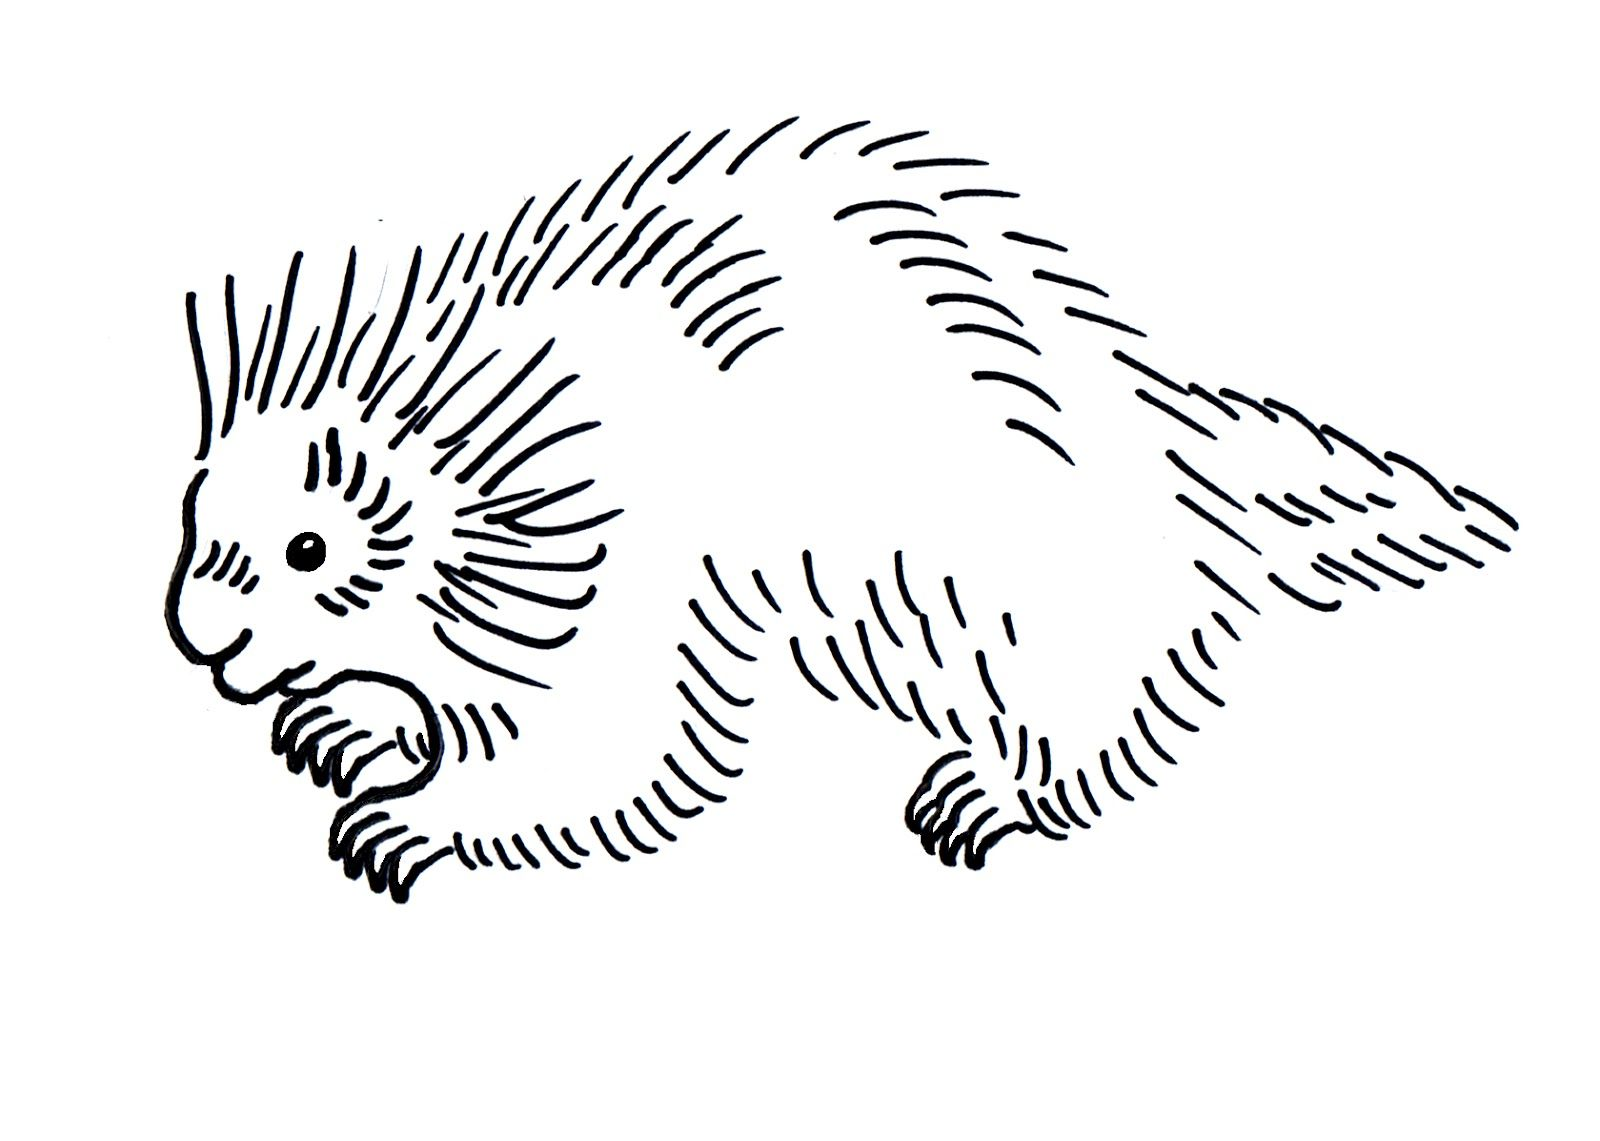 Porcupine Coloring Pages Best Coloring Pages For Kids Coloring Pages Coloring Pages For Kids Animal Coloring Pages